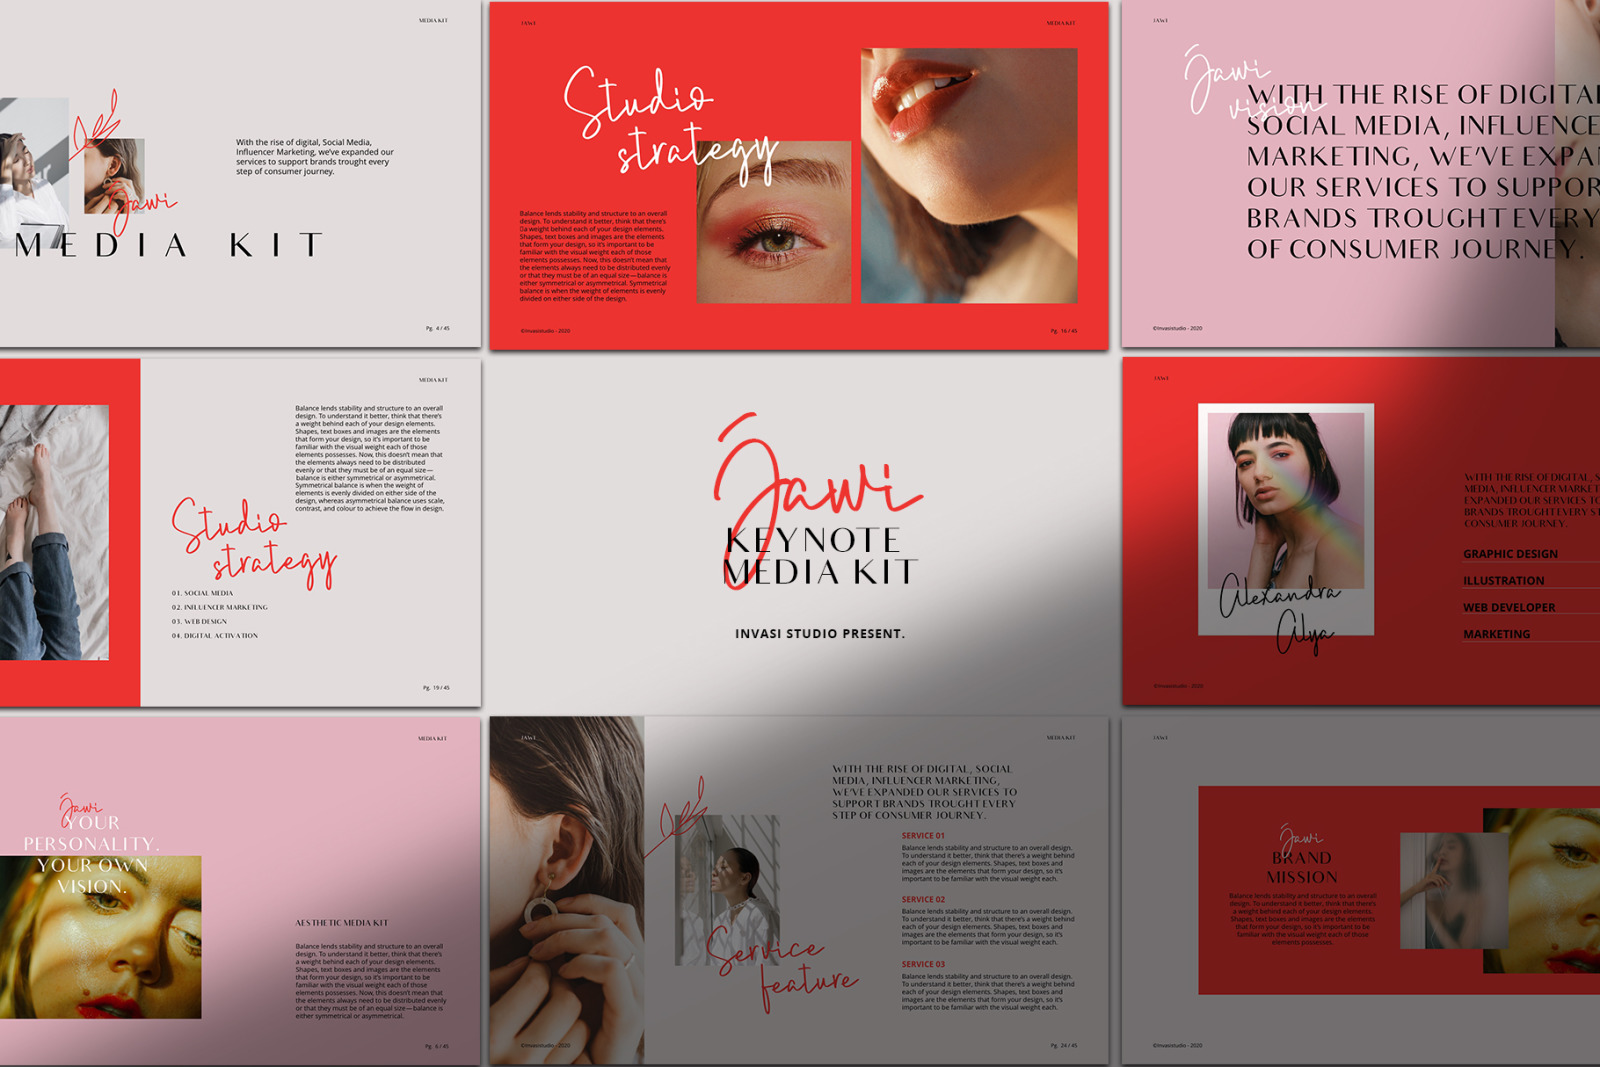 JAWI - Keynote Media Kit Templates